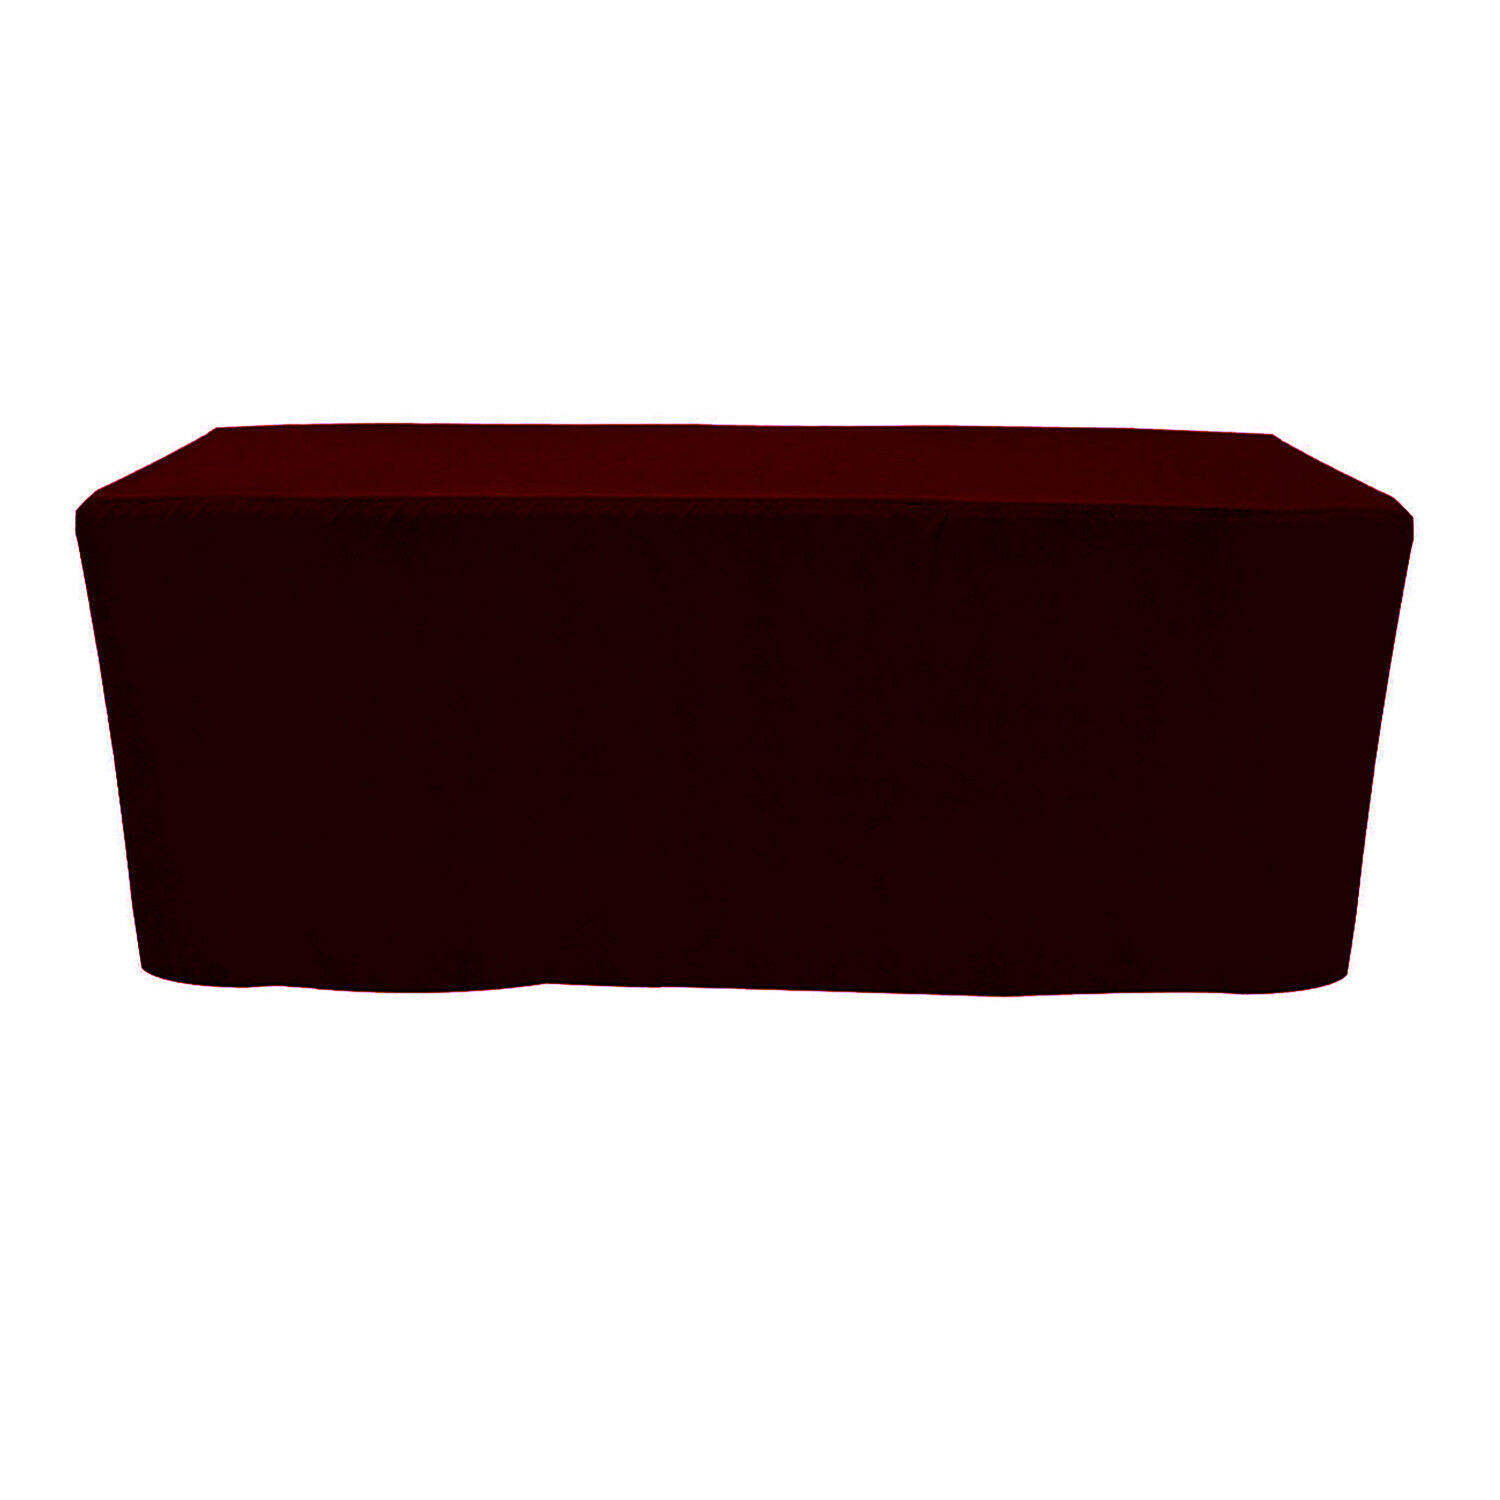 Primary image for Fitted Rectangular Premium Polyester Tablecloth Burgundy 6 ft